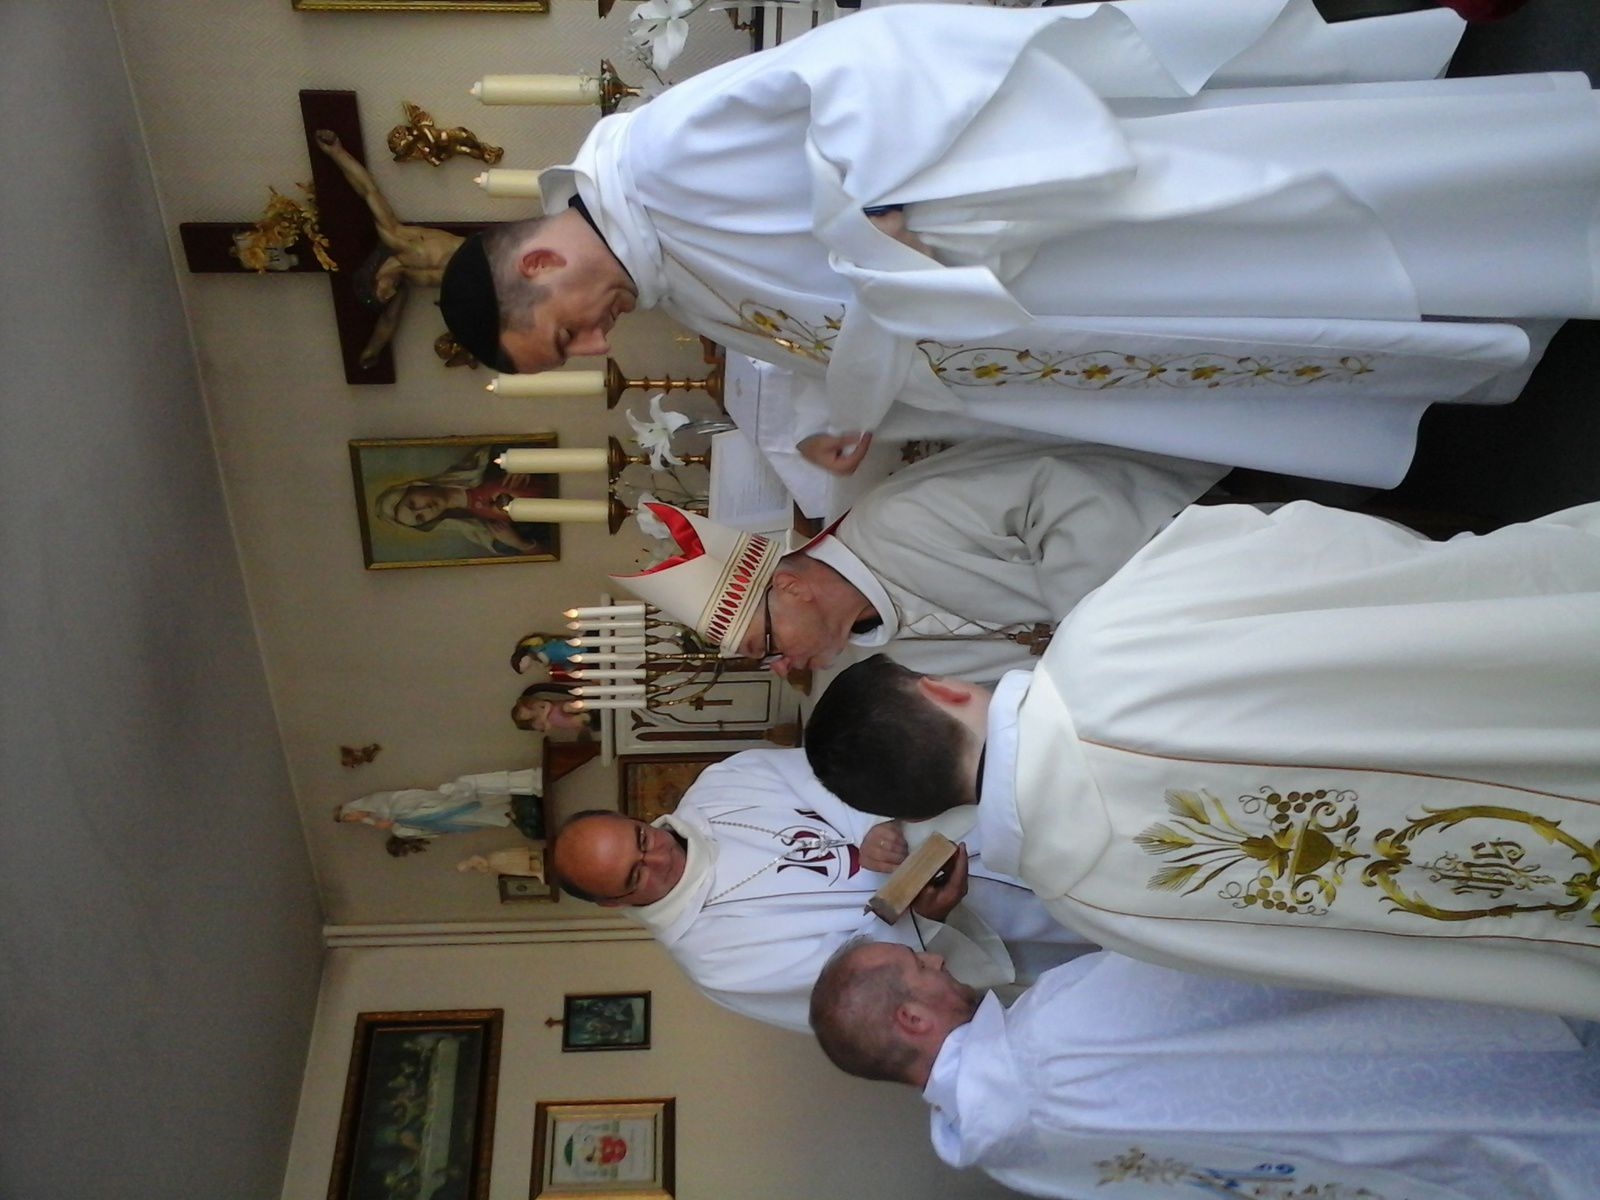 ordinations en notre chapelle de Reims